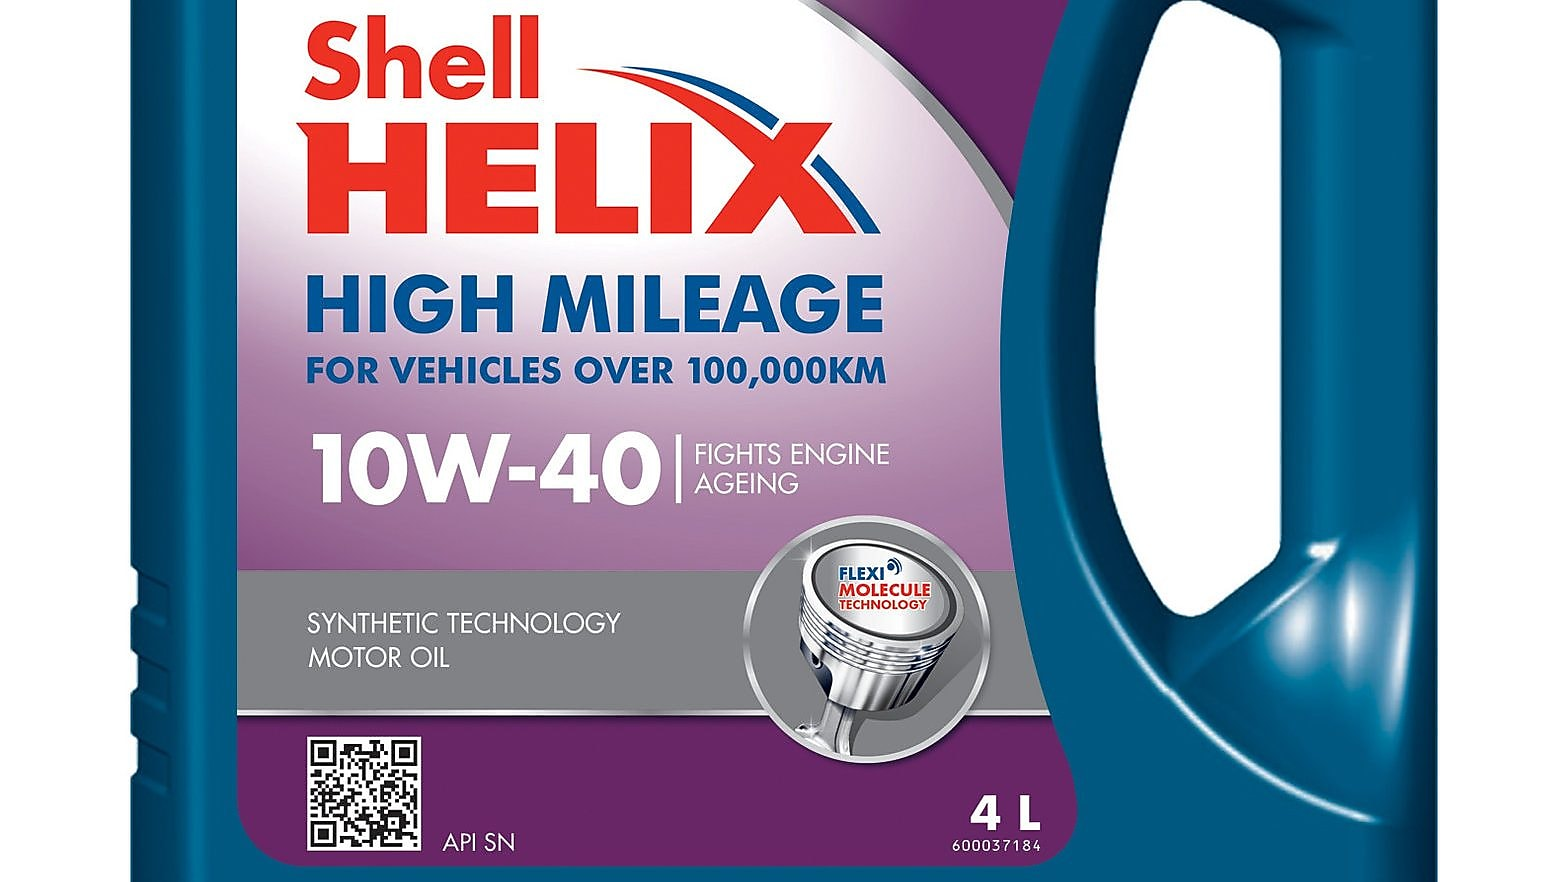 Shell Helix High Mileage 10W-40 | Shell Philippines